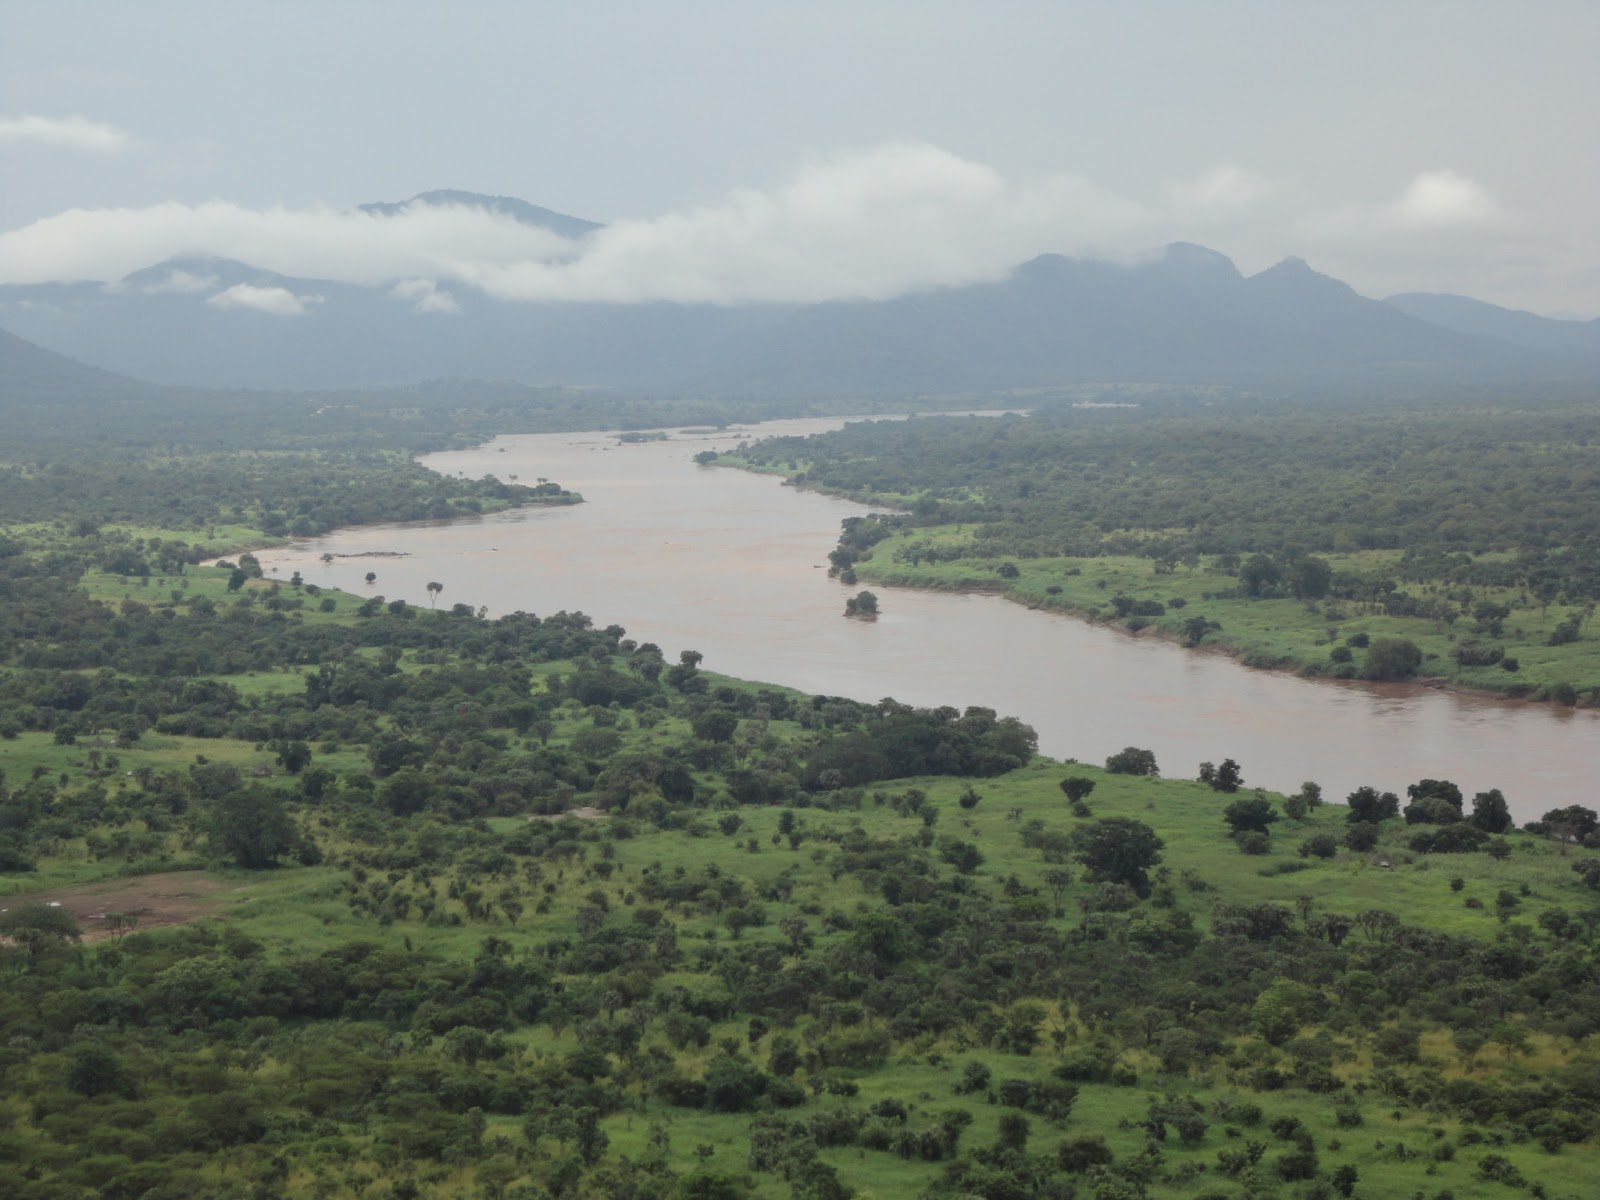 Developments In Rural Areas Across The World Another View On The Nile An Interview With